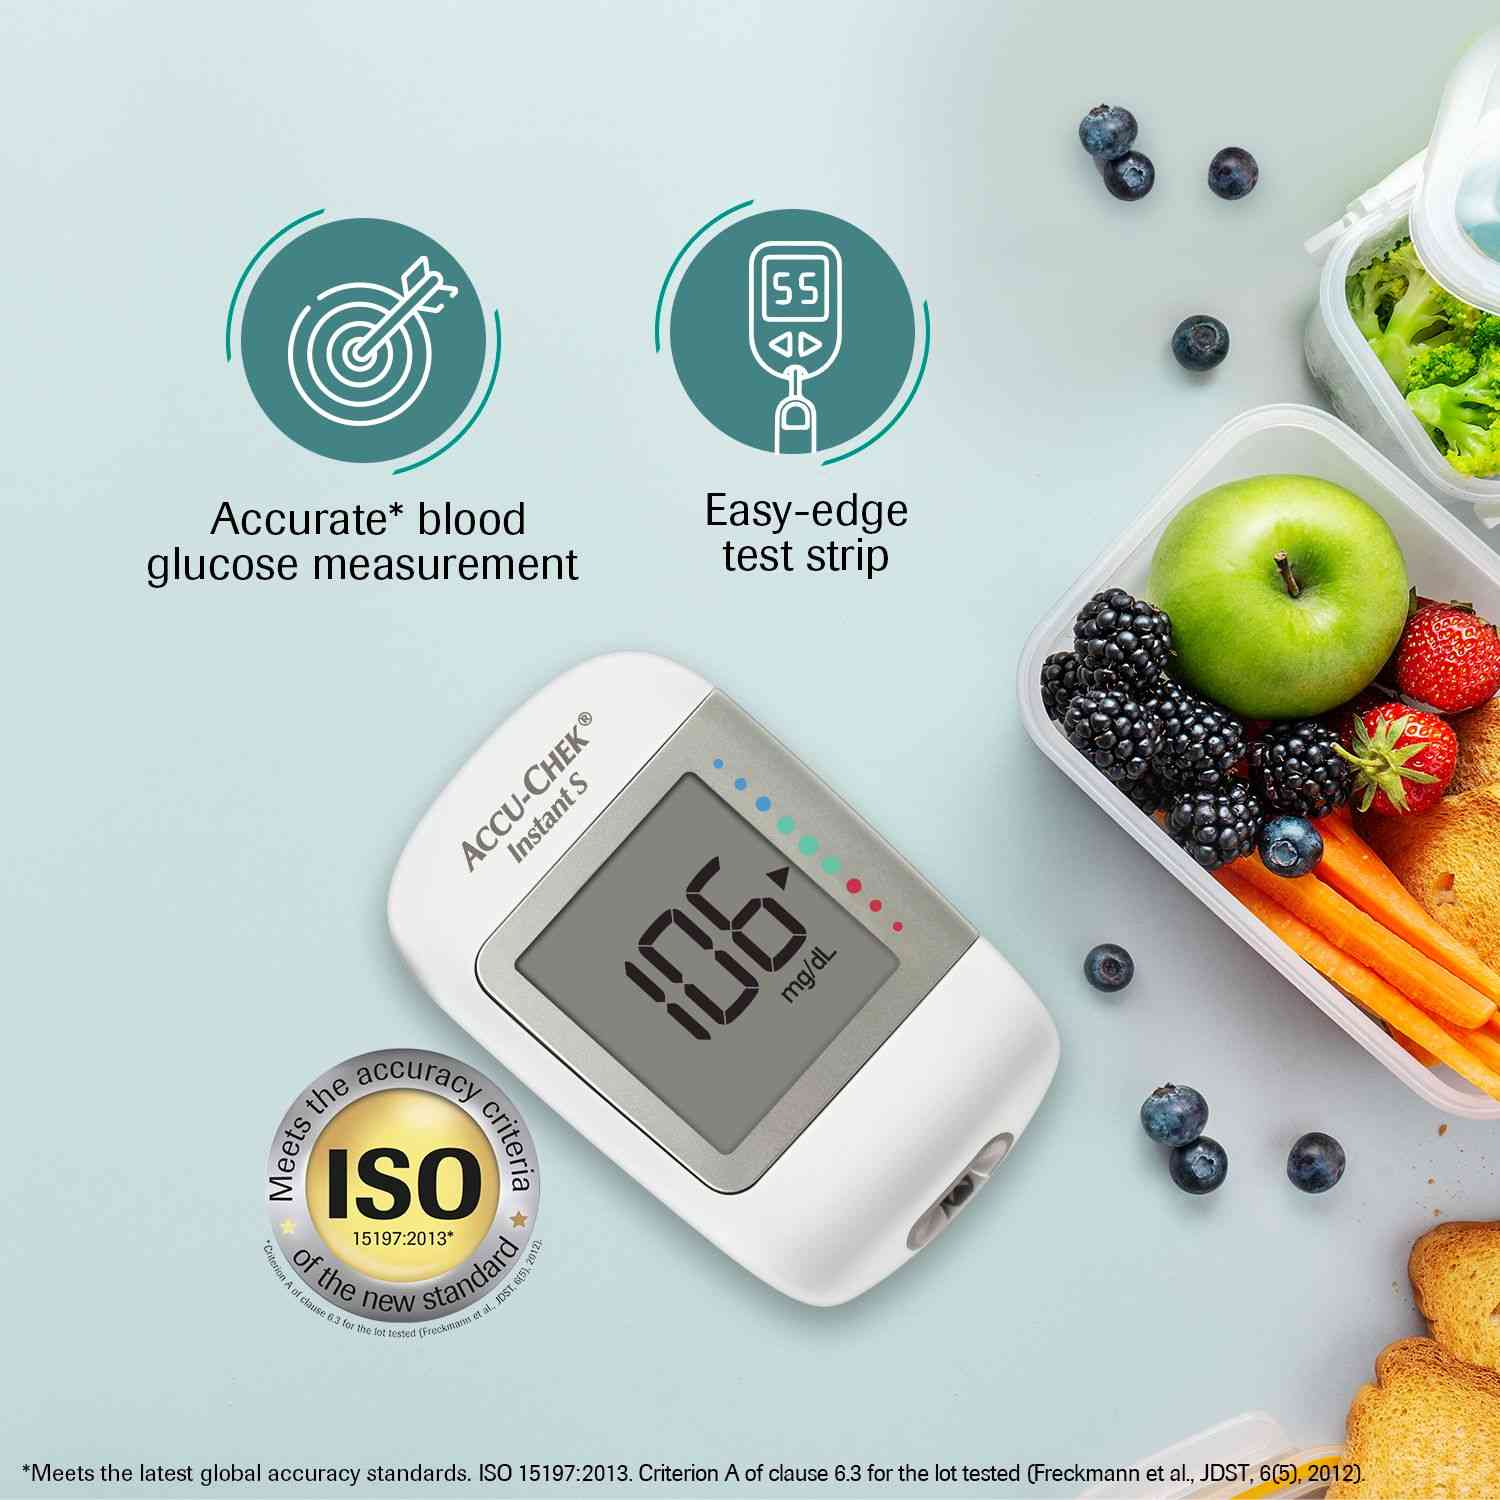 Accu-chek Instant S Glucometer Kit (with Free 10 Strips)